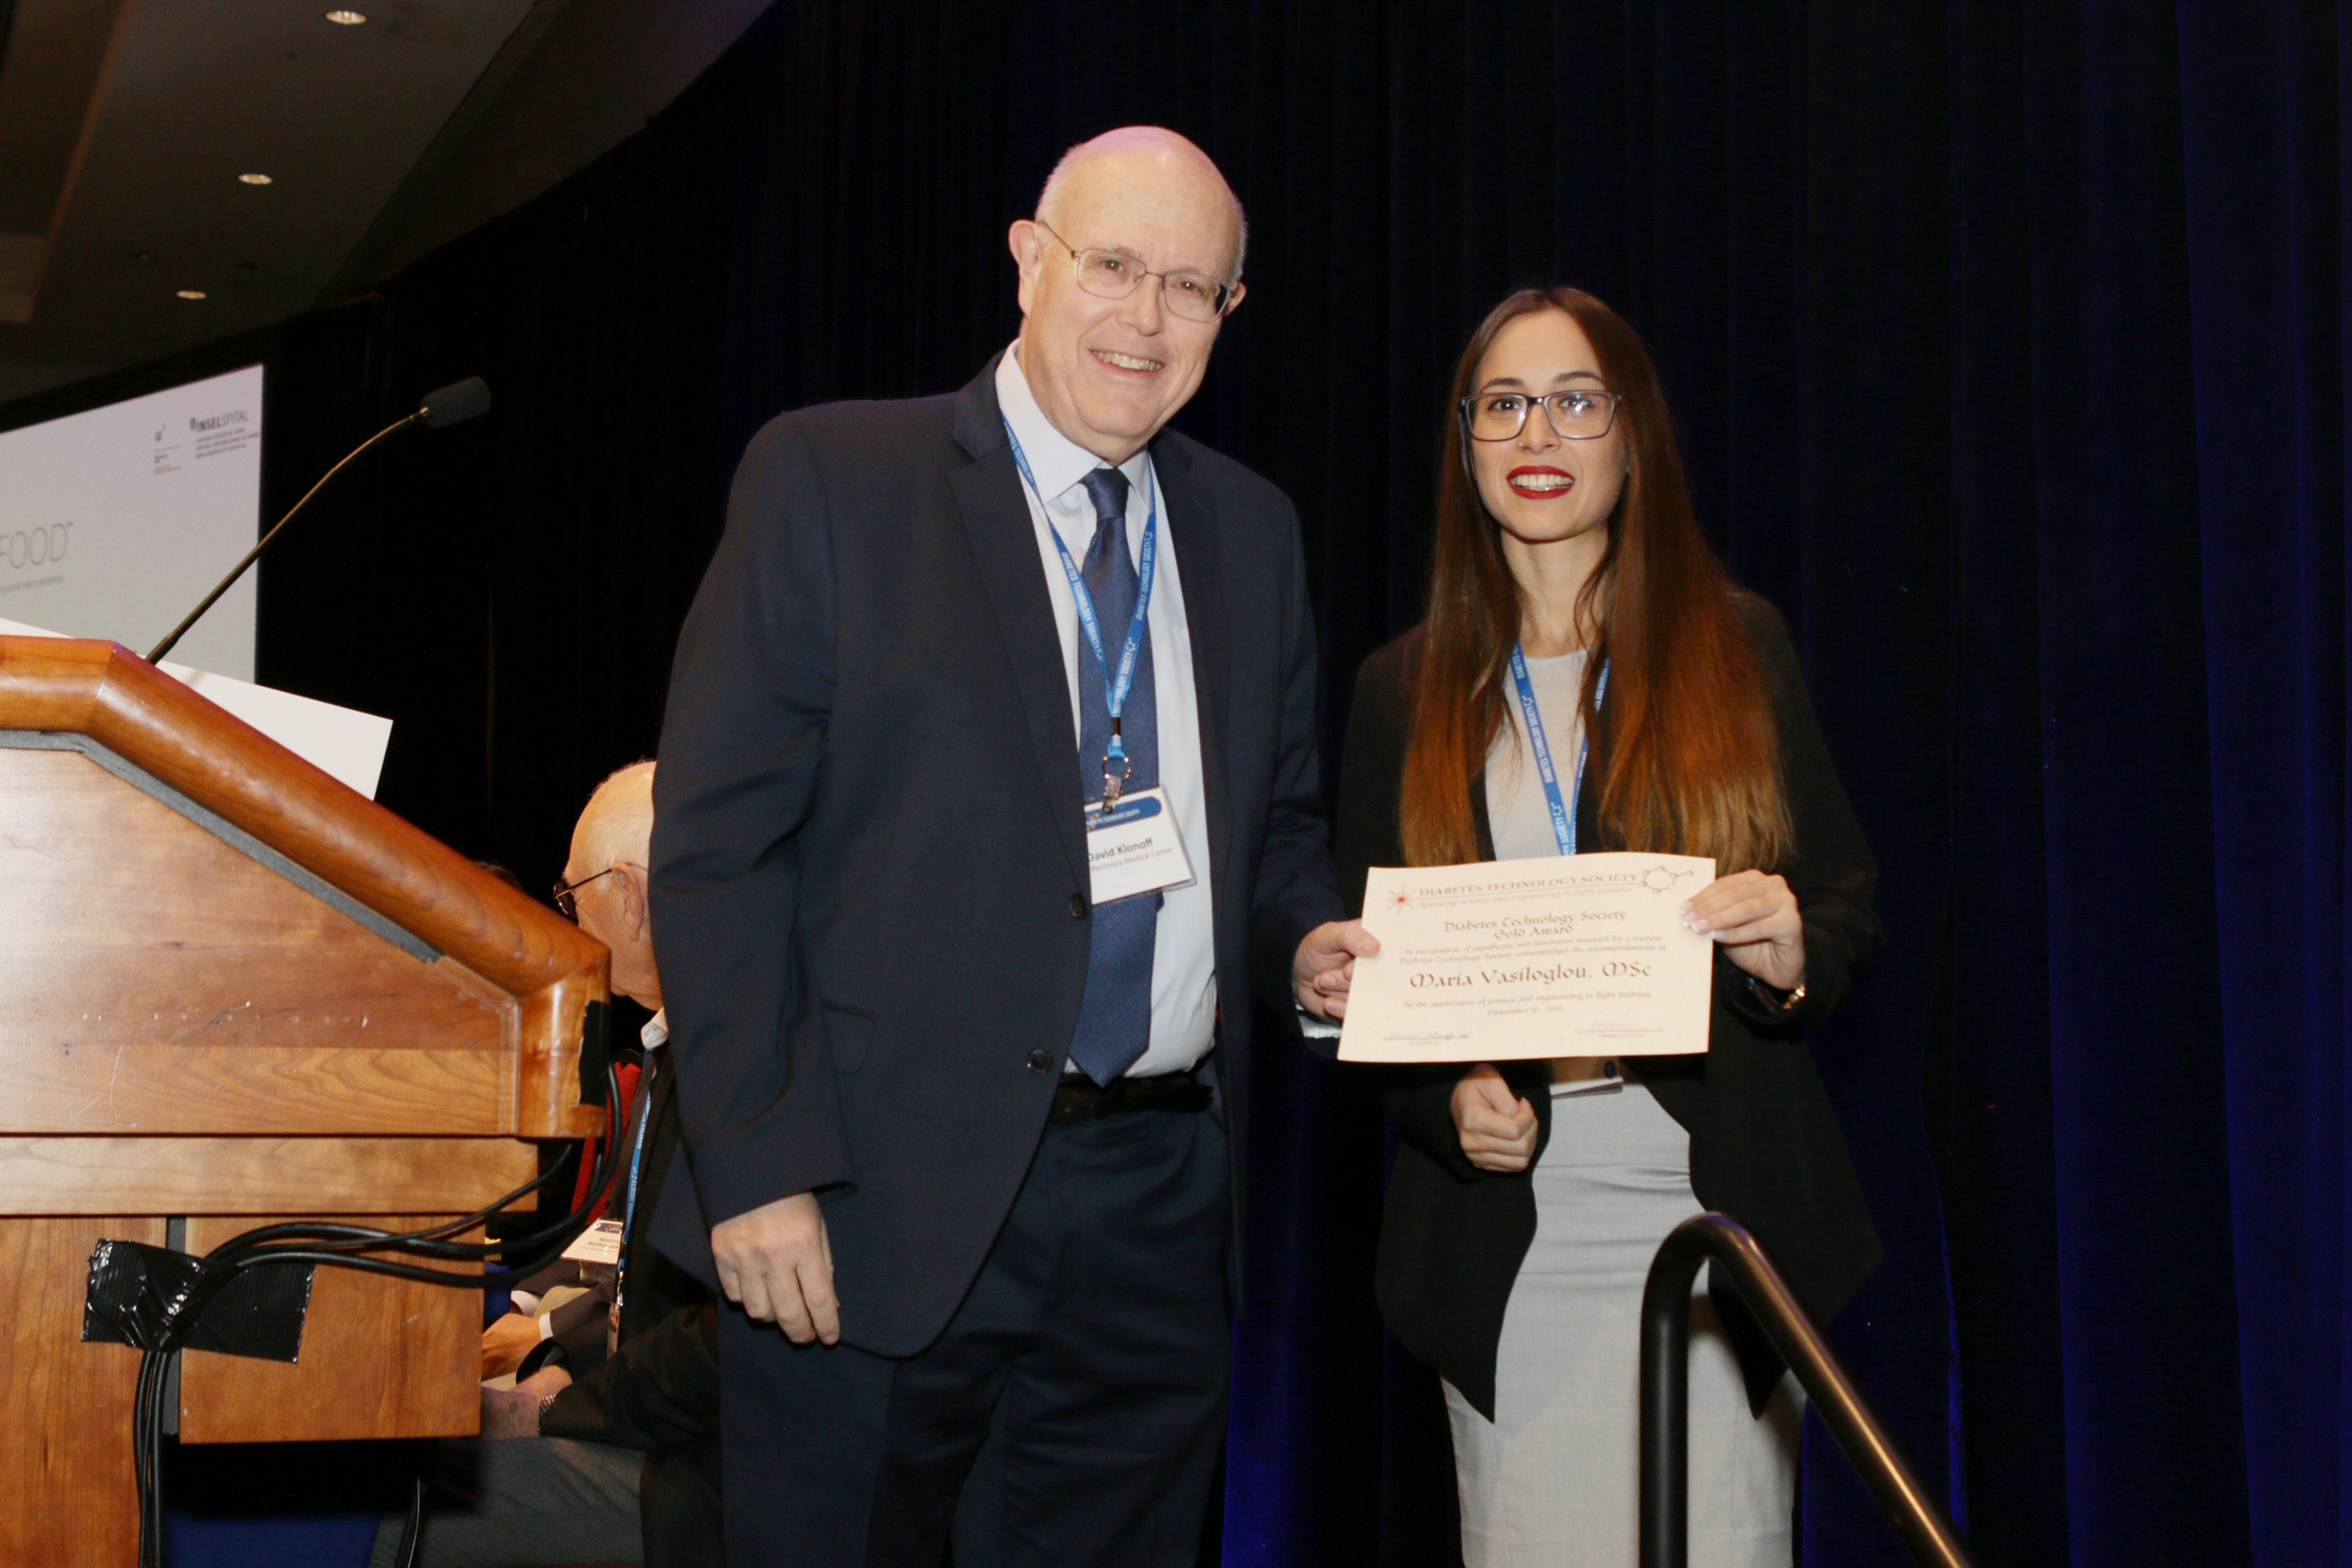 Maria Vasiloglou receives the Gold Student award